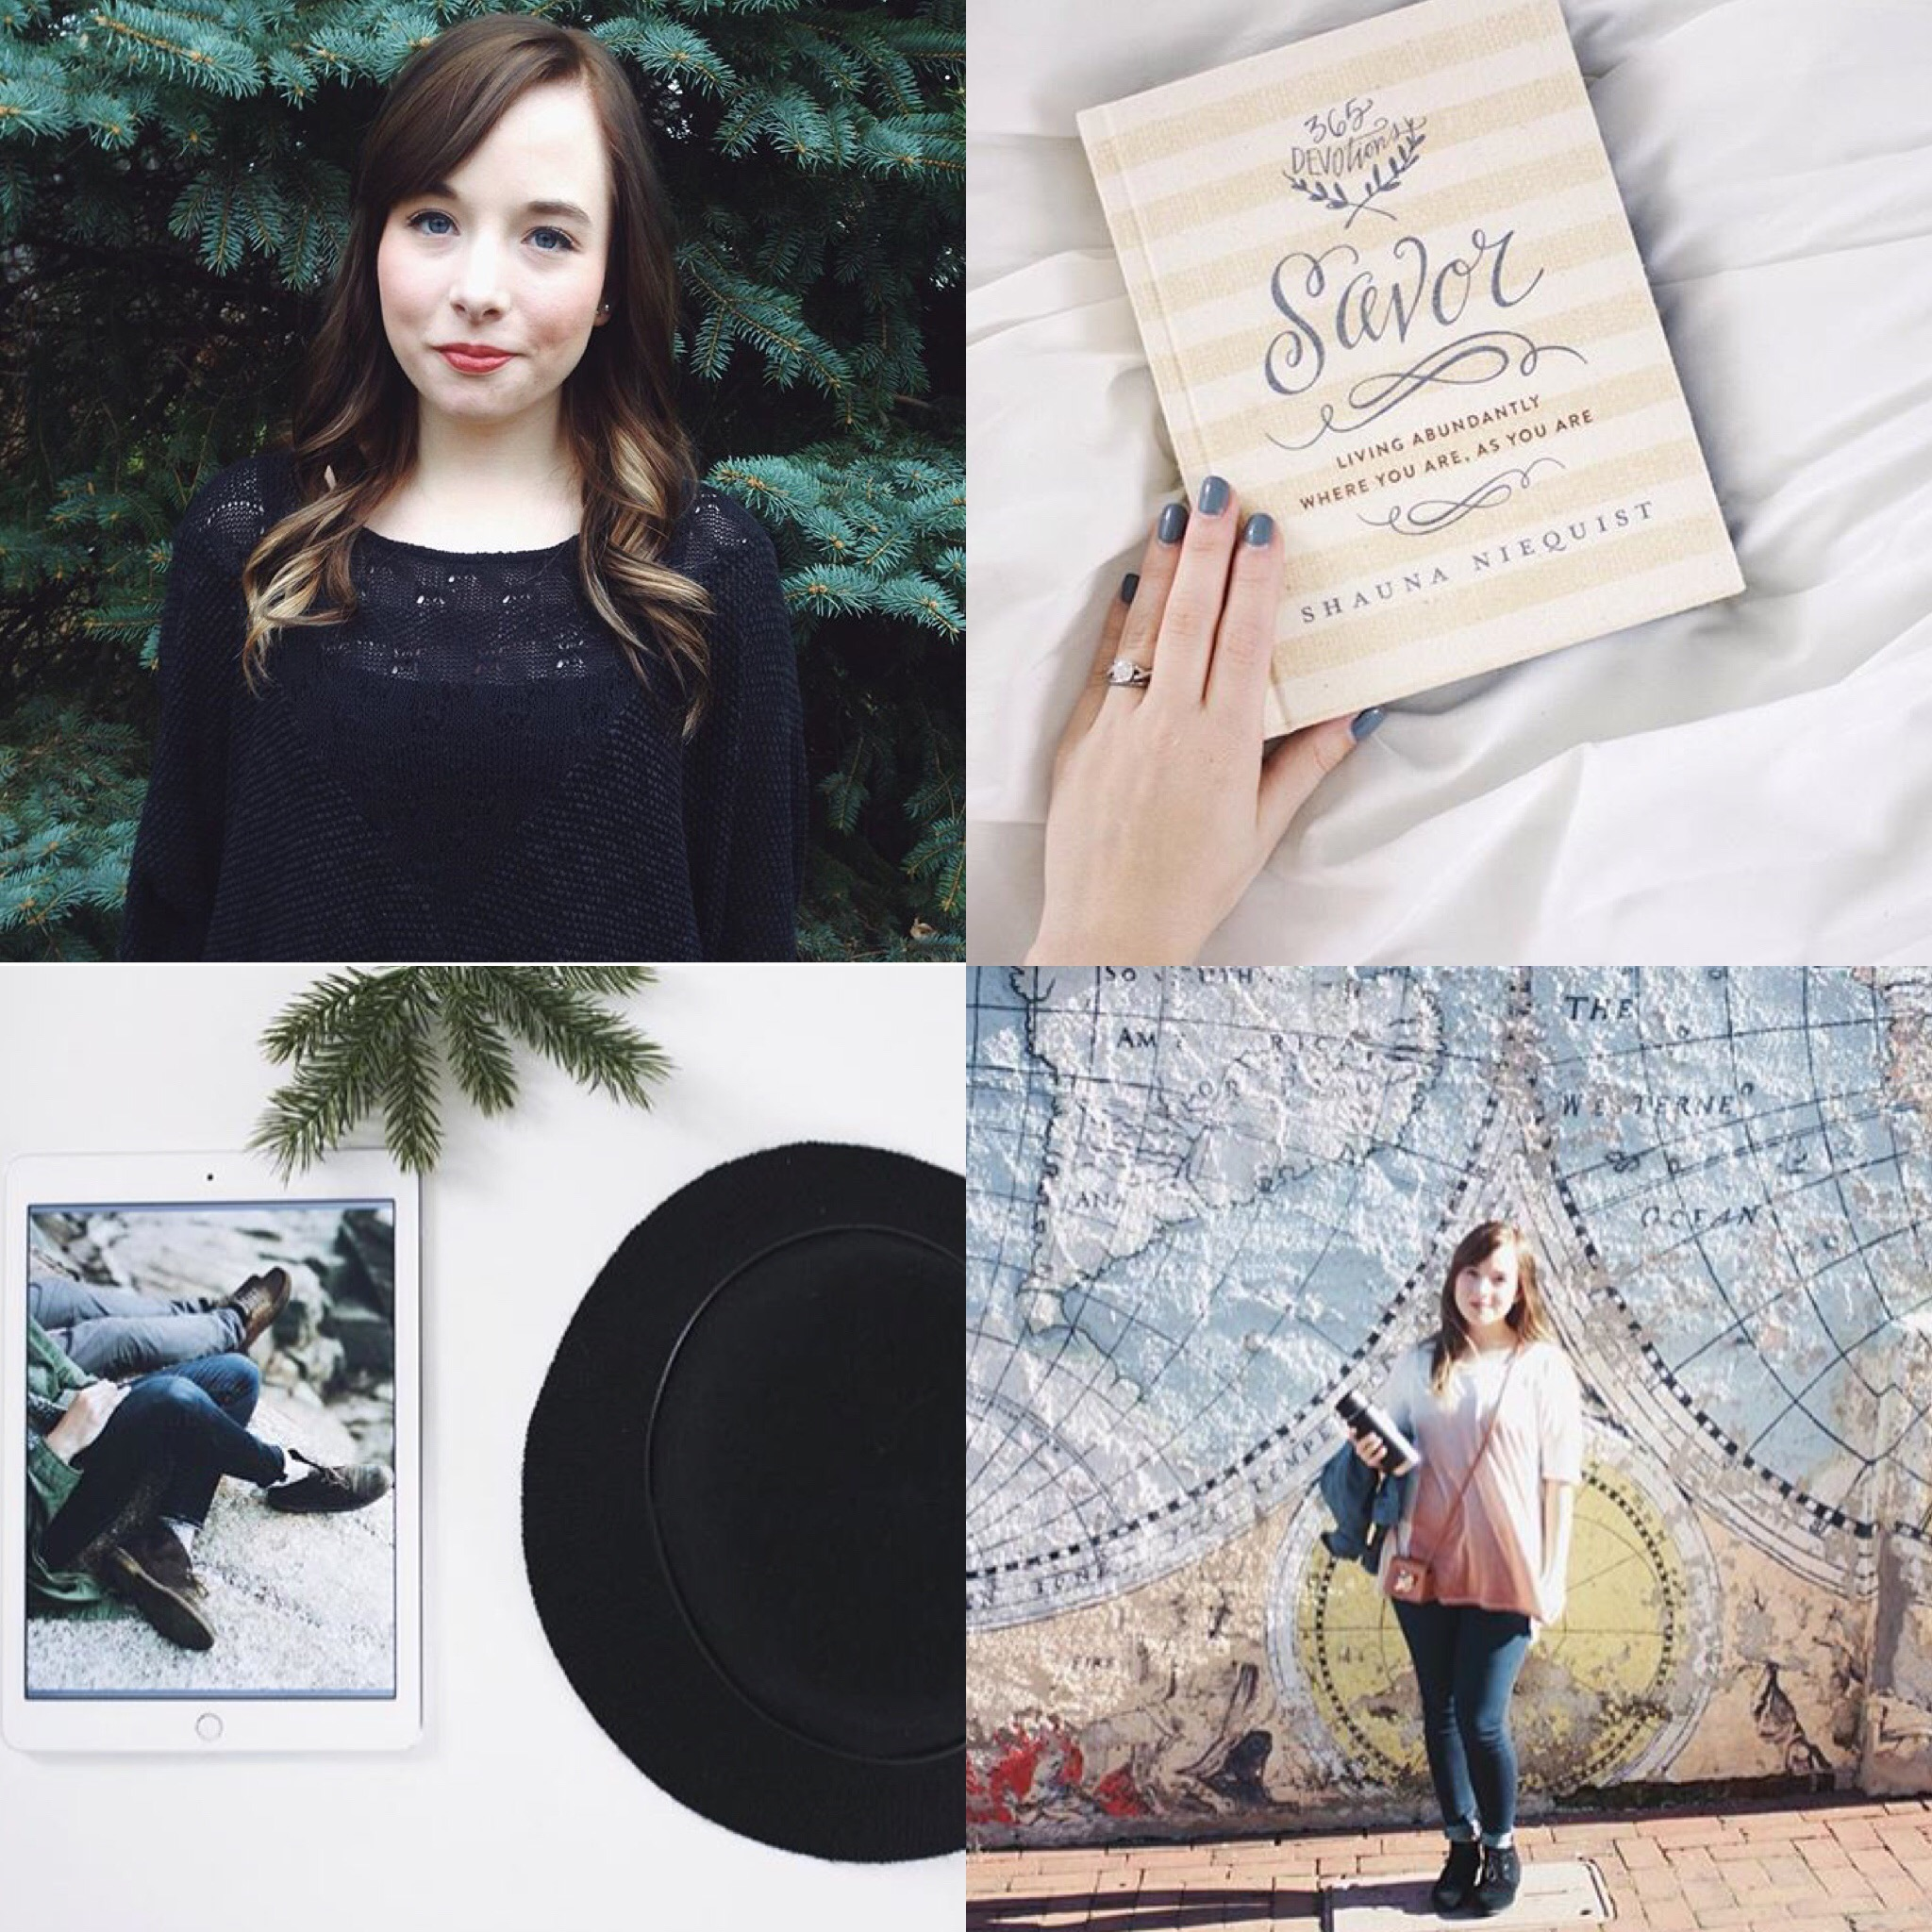 Photos from the Instagram feed of @summertelban